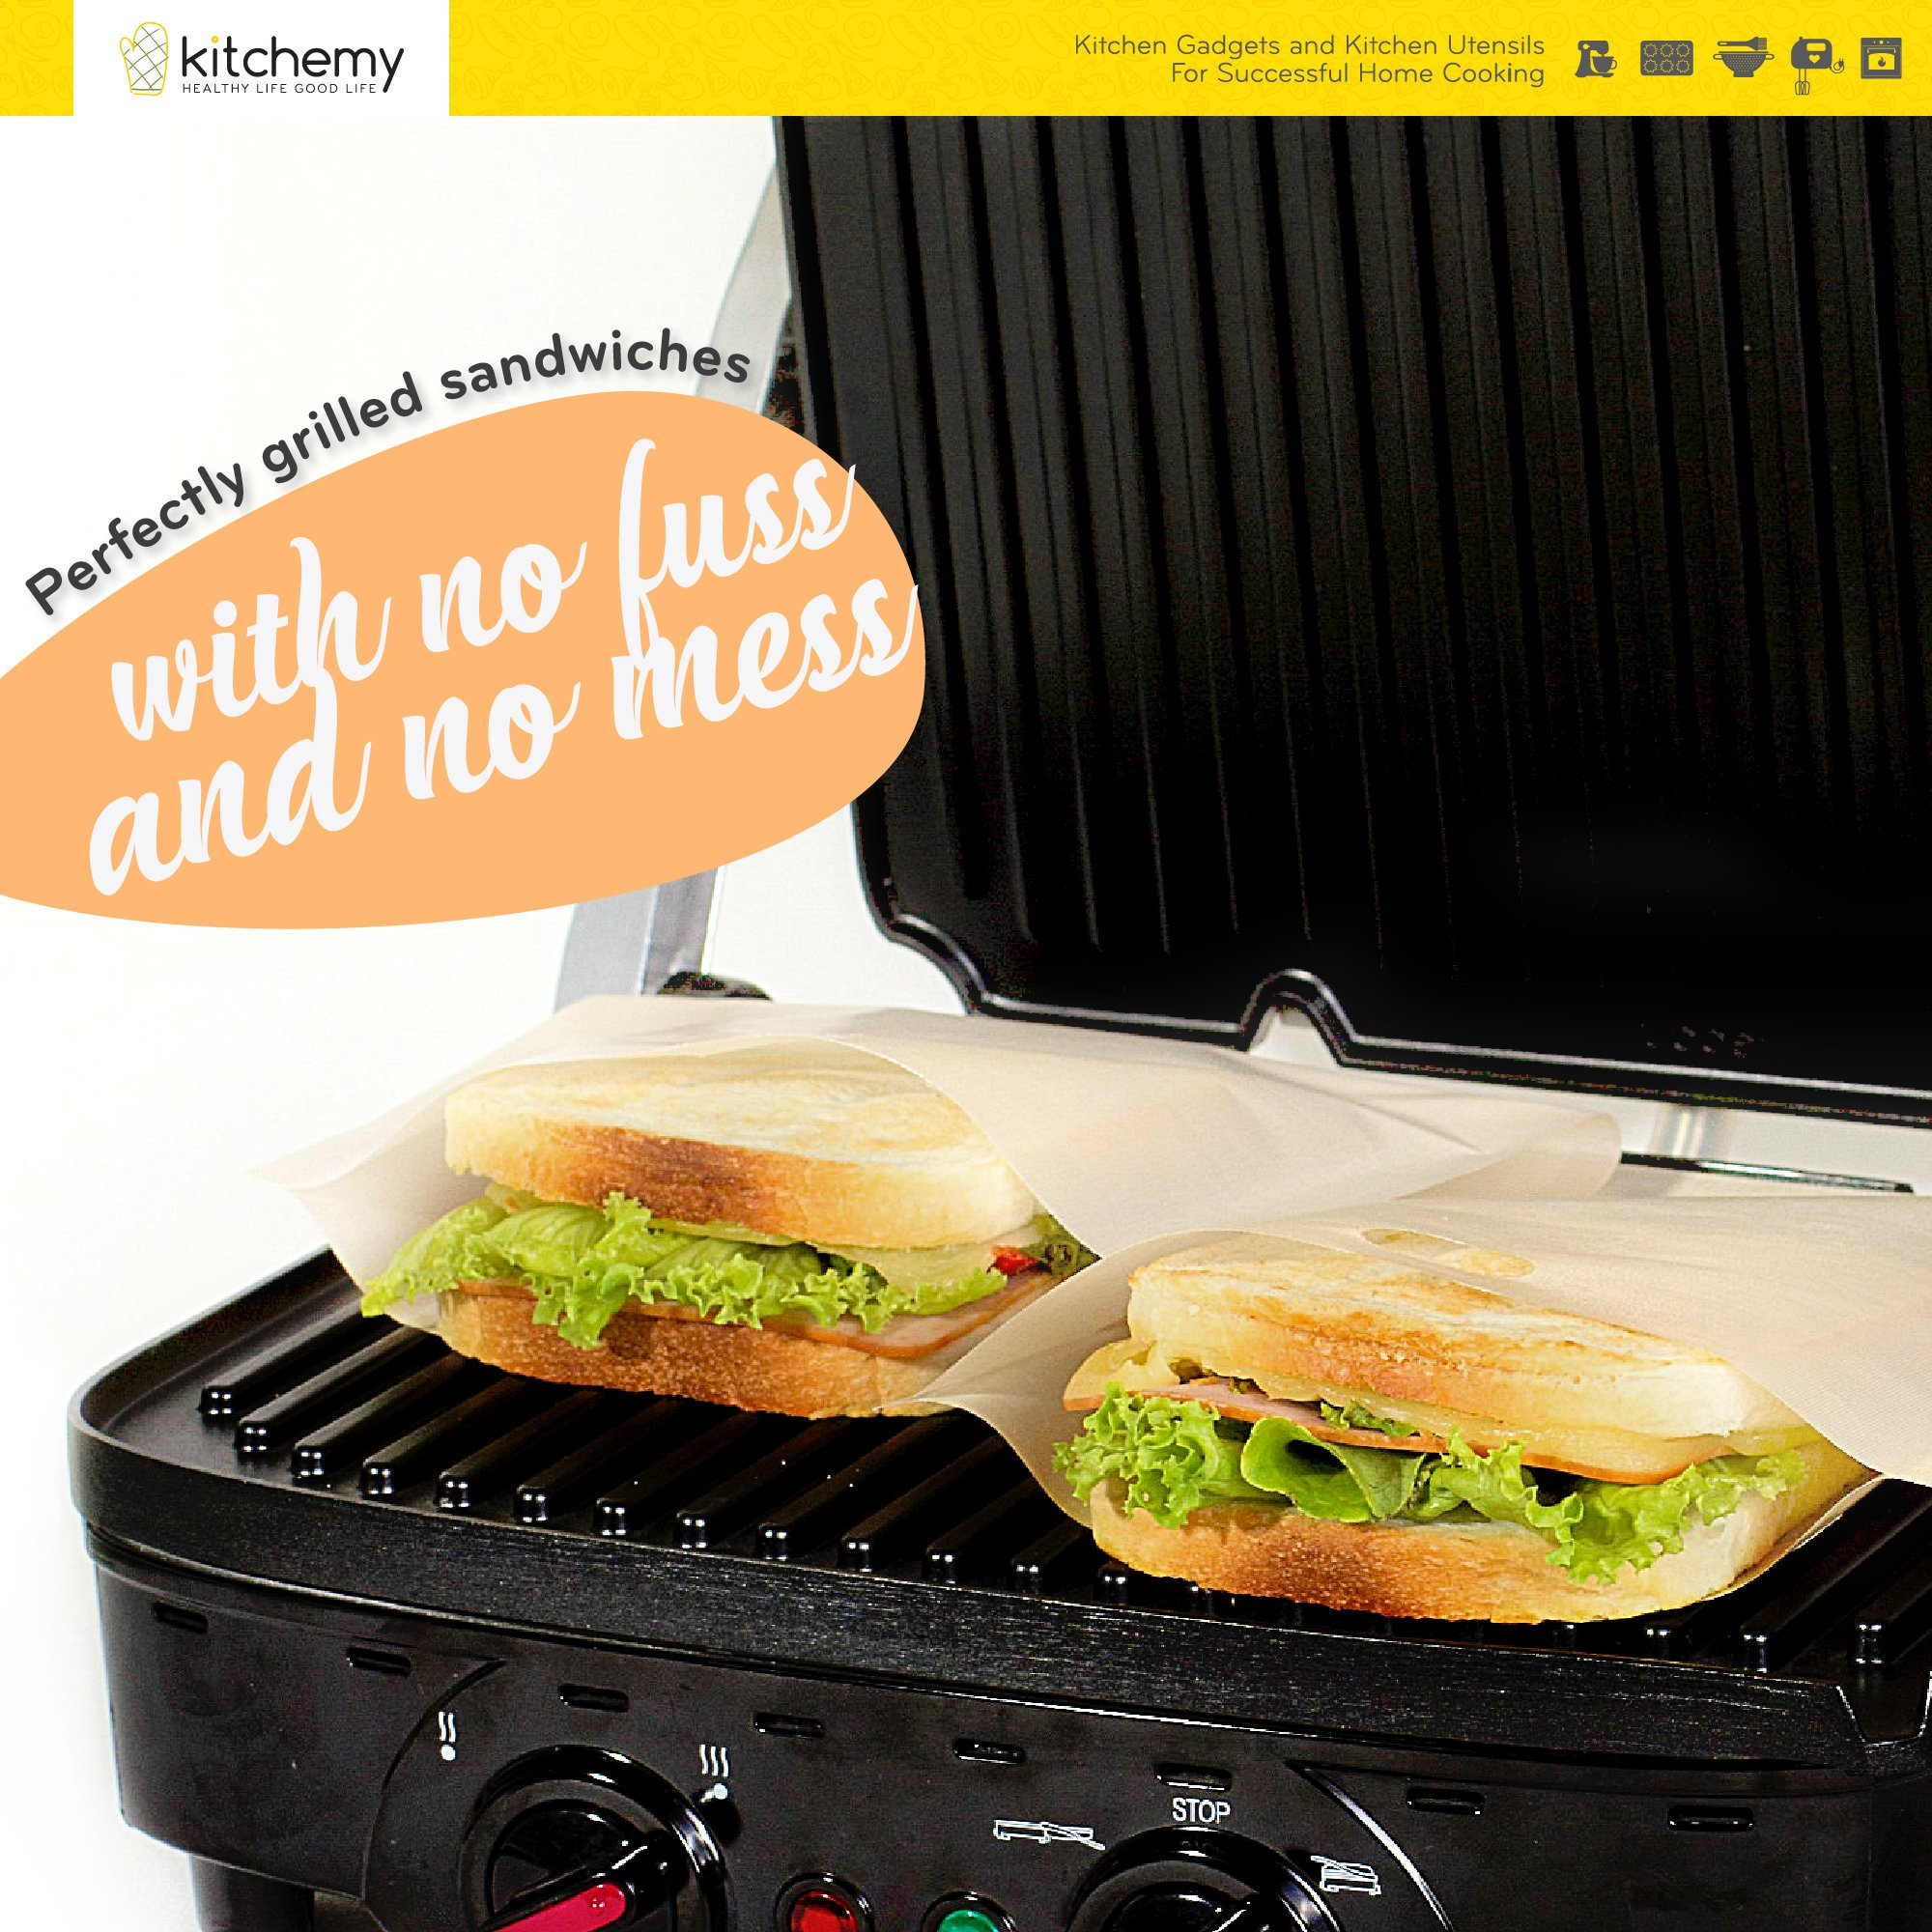 2018 UPGRADED 12 Pack Toaster Bags Reusable for Grilled Cheese Sandwich | Safest On The Market - FDA & LFGB Approved - 100% BPA & Gluten Free | Non Stick Toast Bag Made of Premium Quality Teflon by Kitchemy (Image #5)